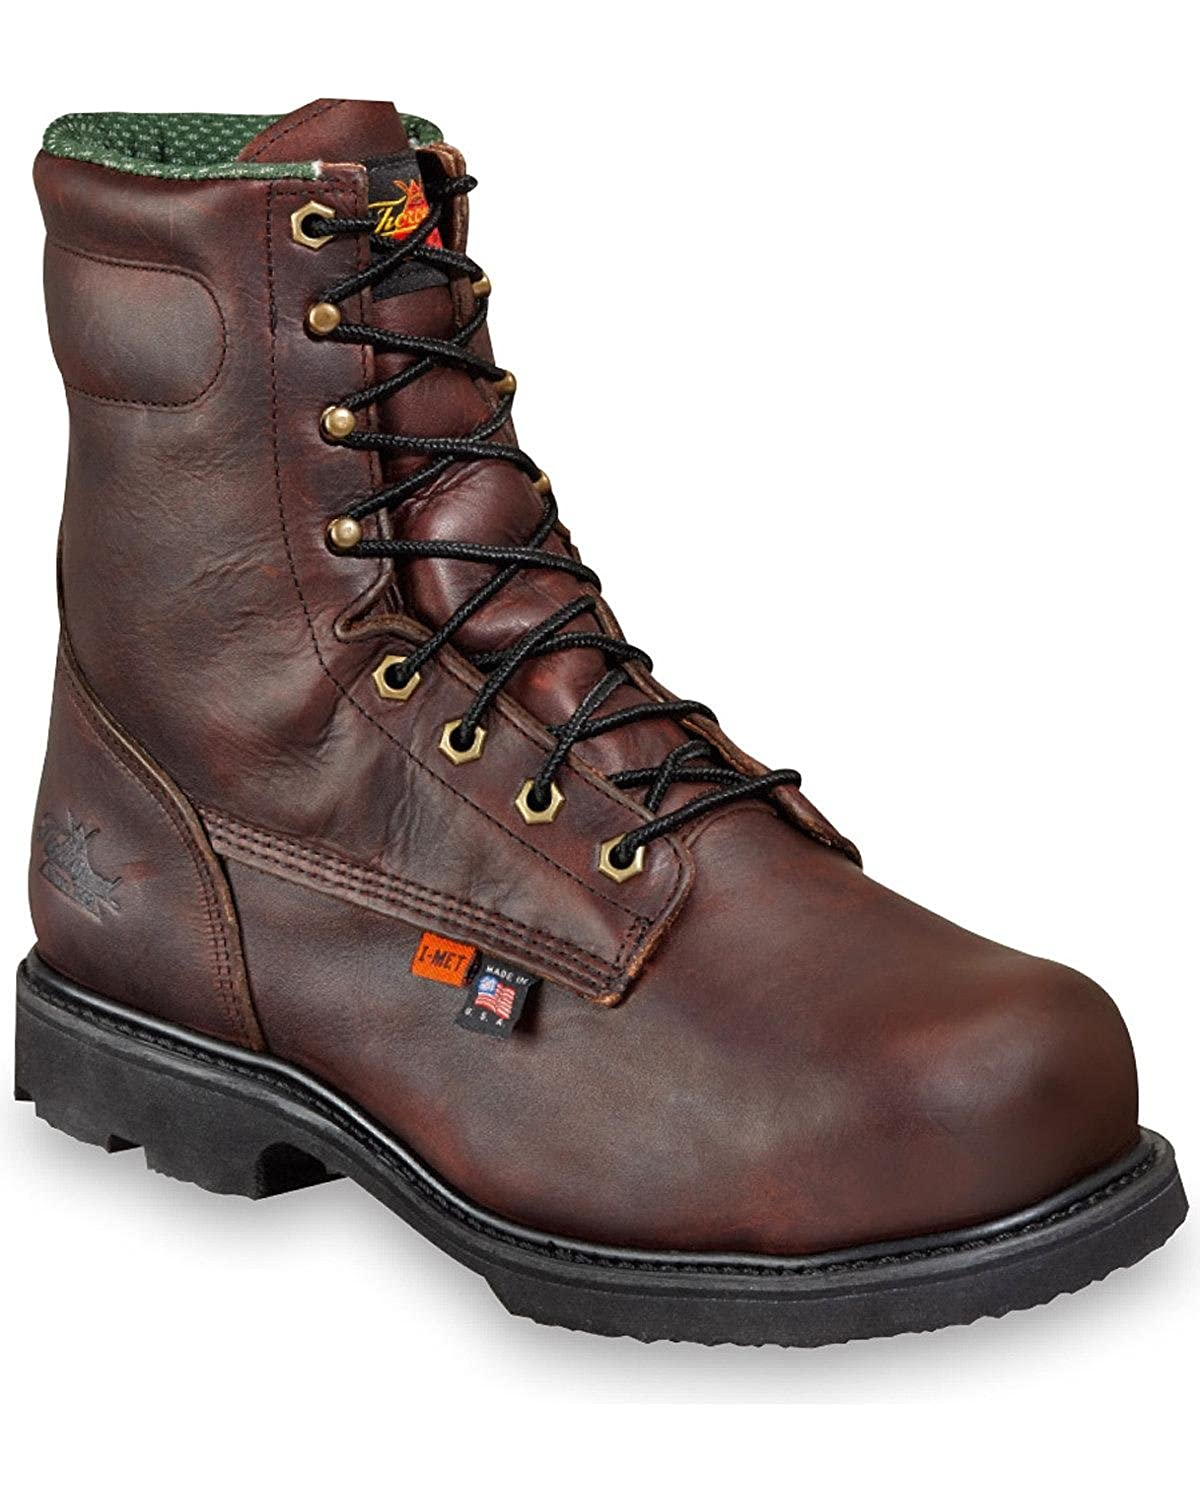 Thorogood Mens USA Made 8 I-MET2 Safety Toe Work Boot Leather 804-4831